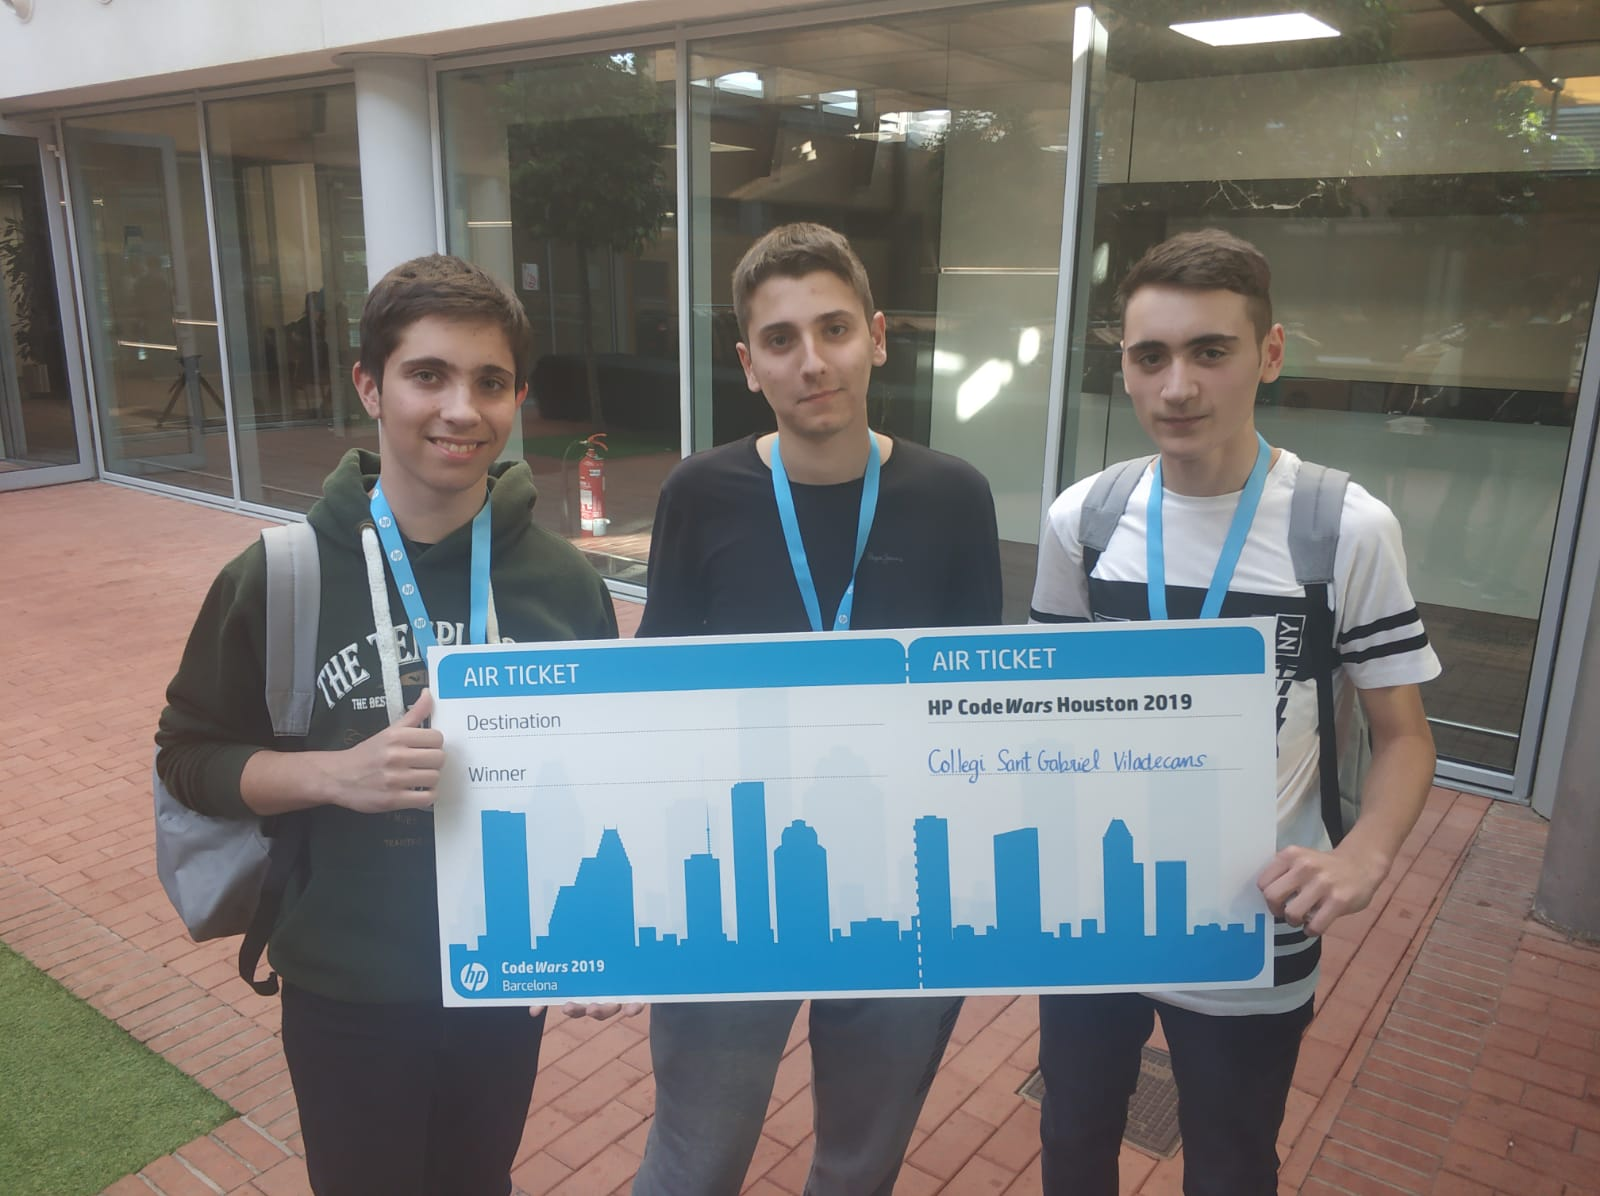 HP CodeWars 2020: rumb a Houston!